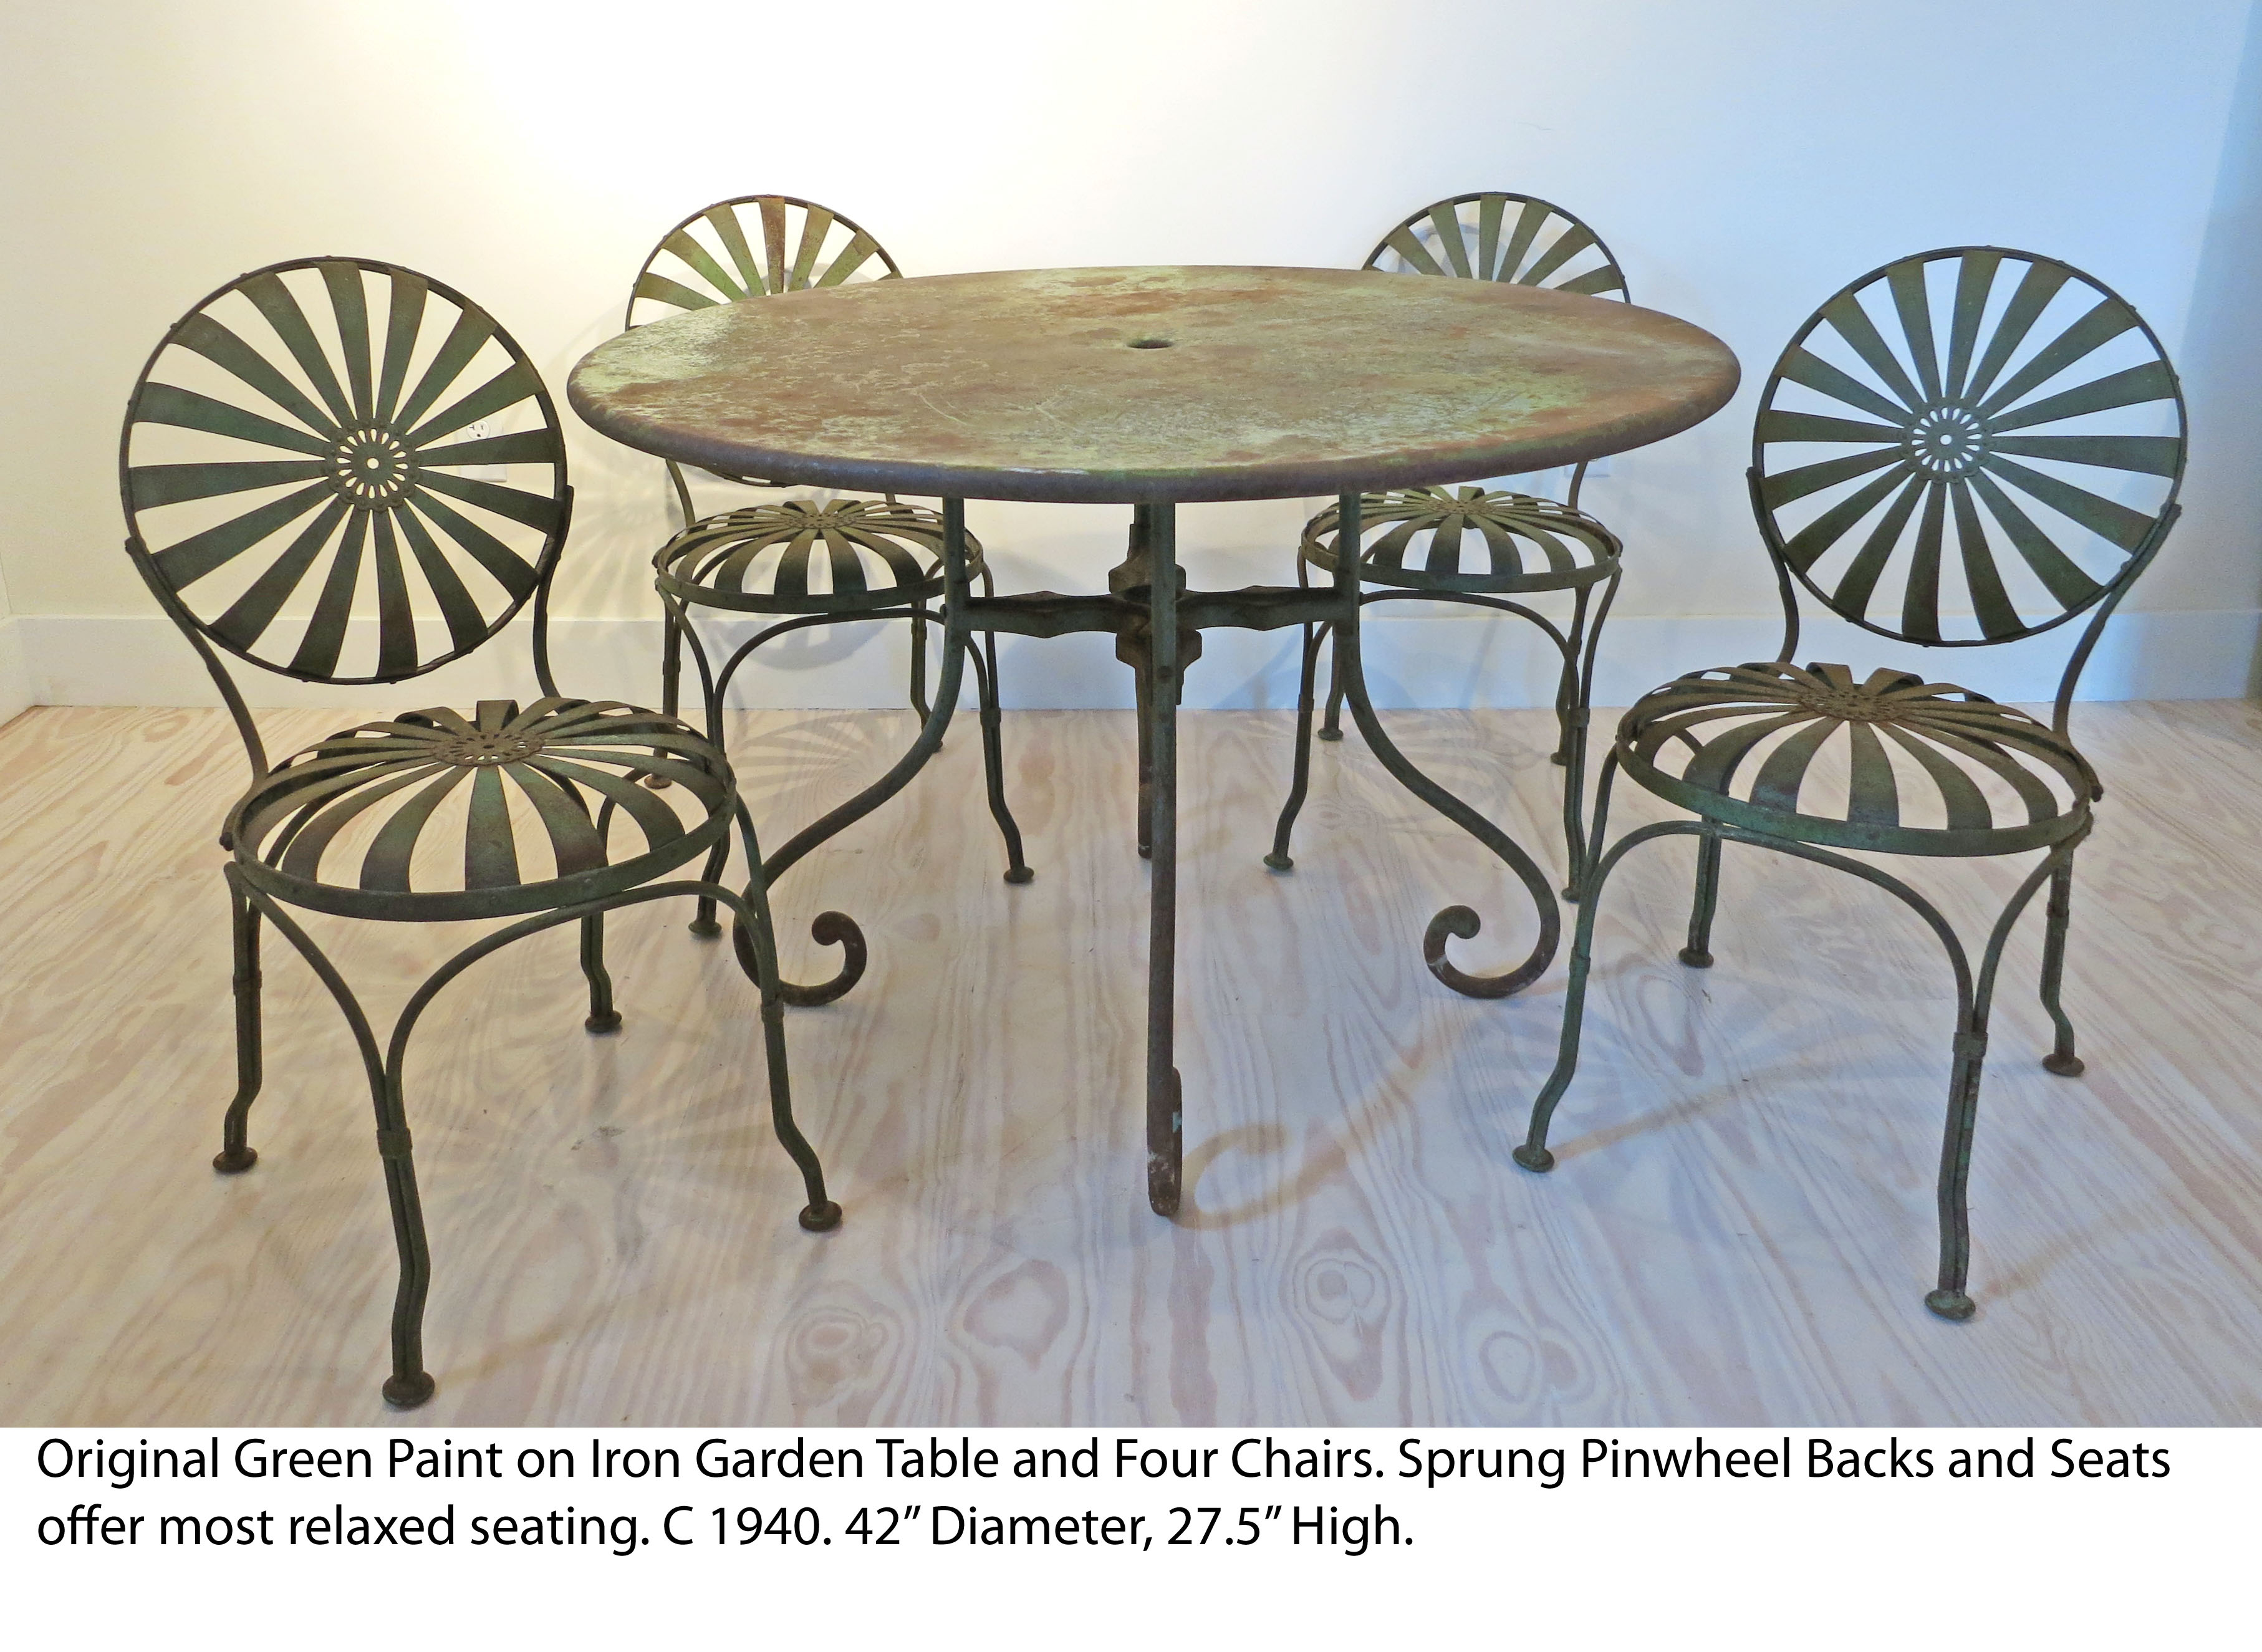 Antique Garden Furniture Fair: Antiques for the Garden and the Garden ...